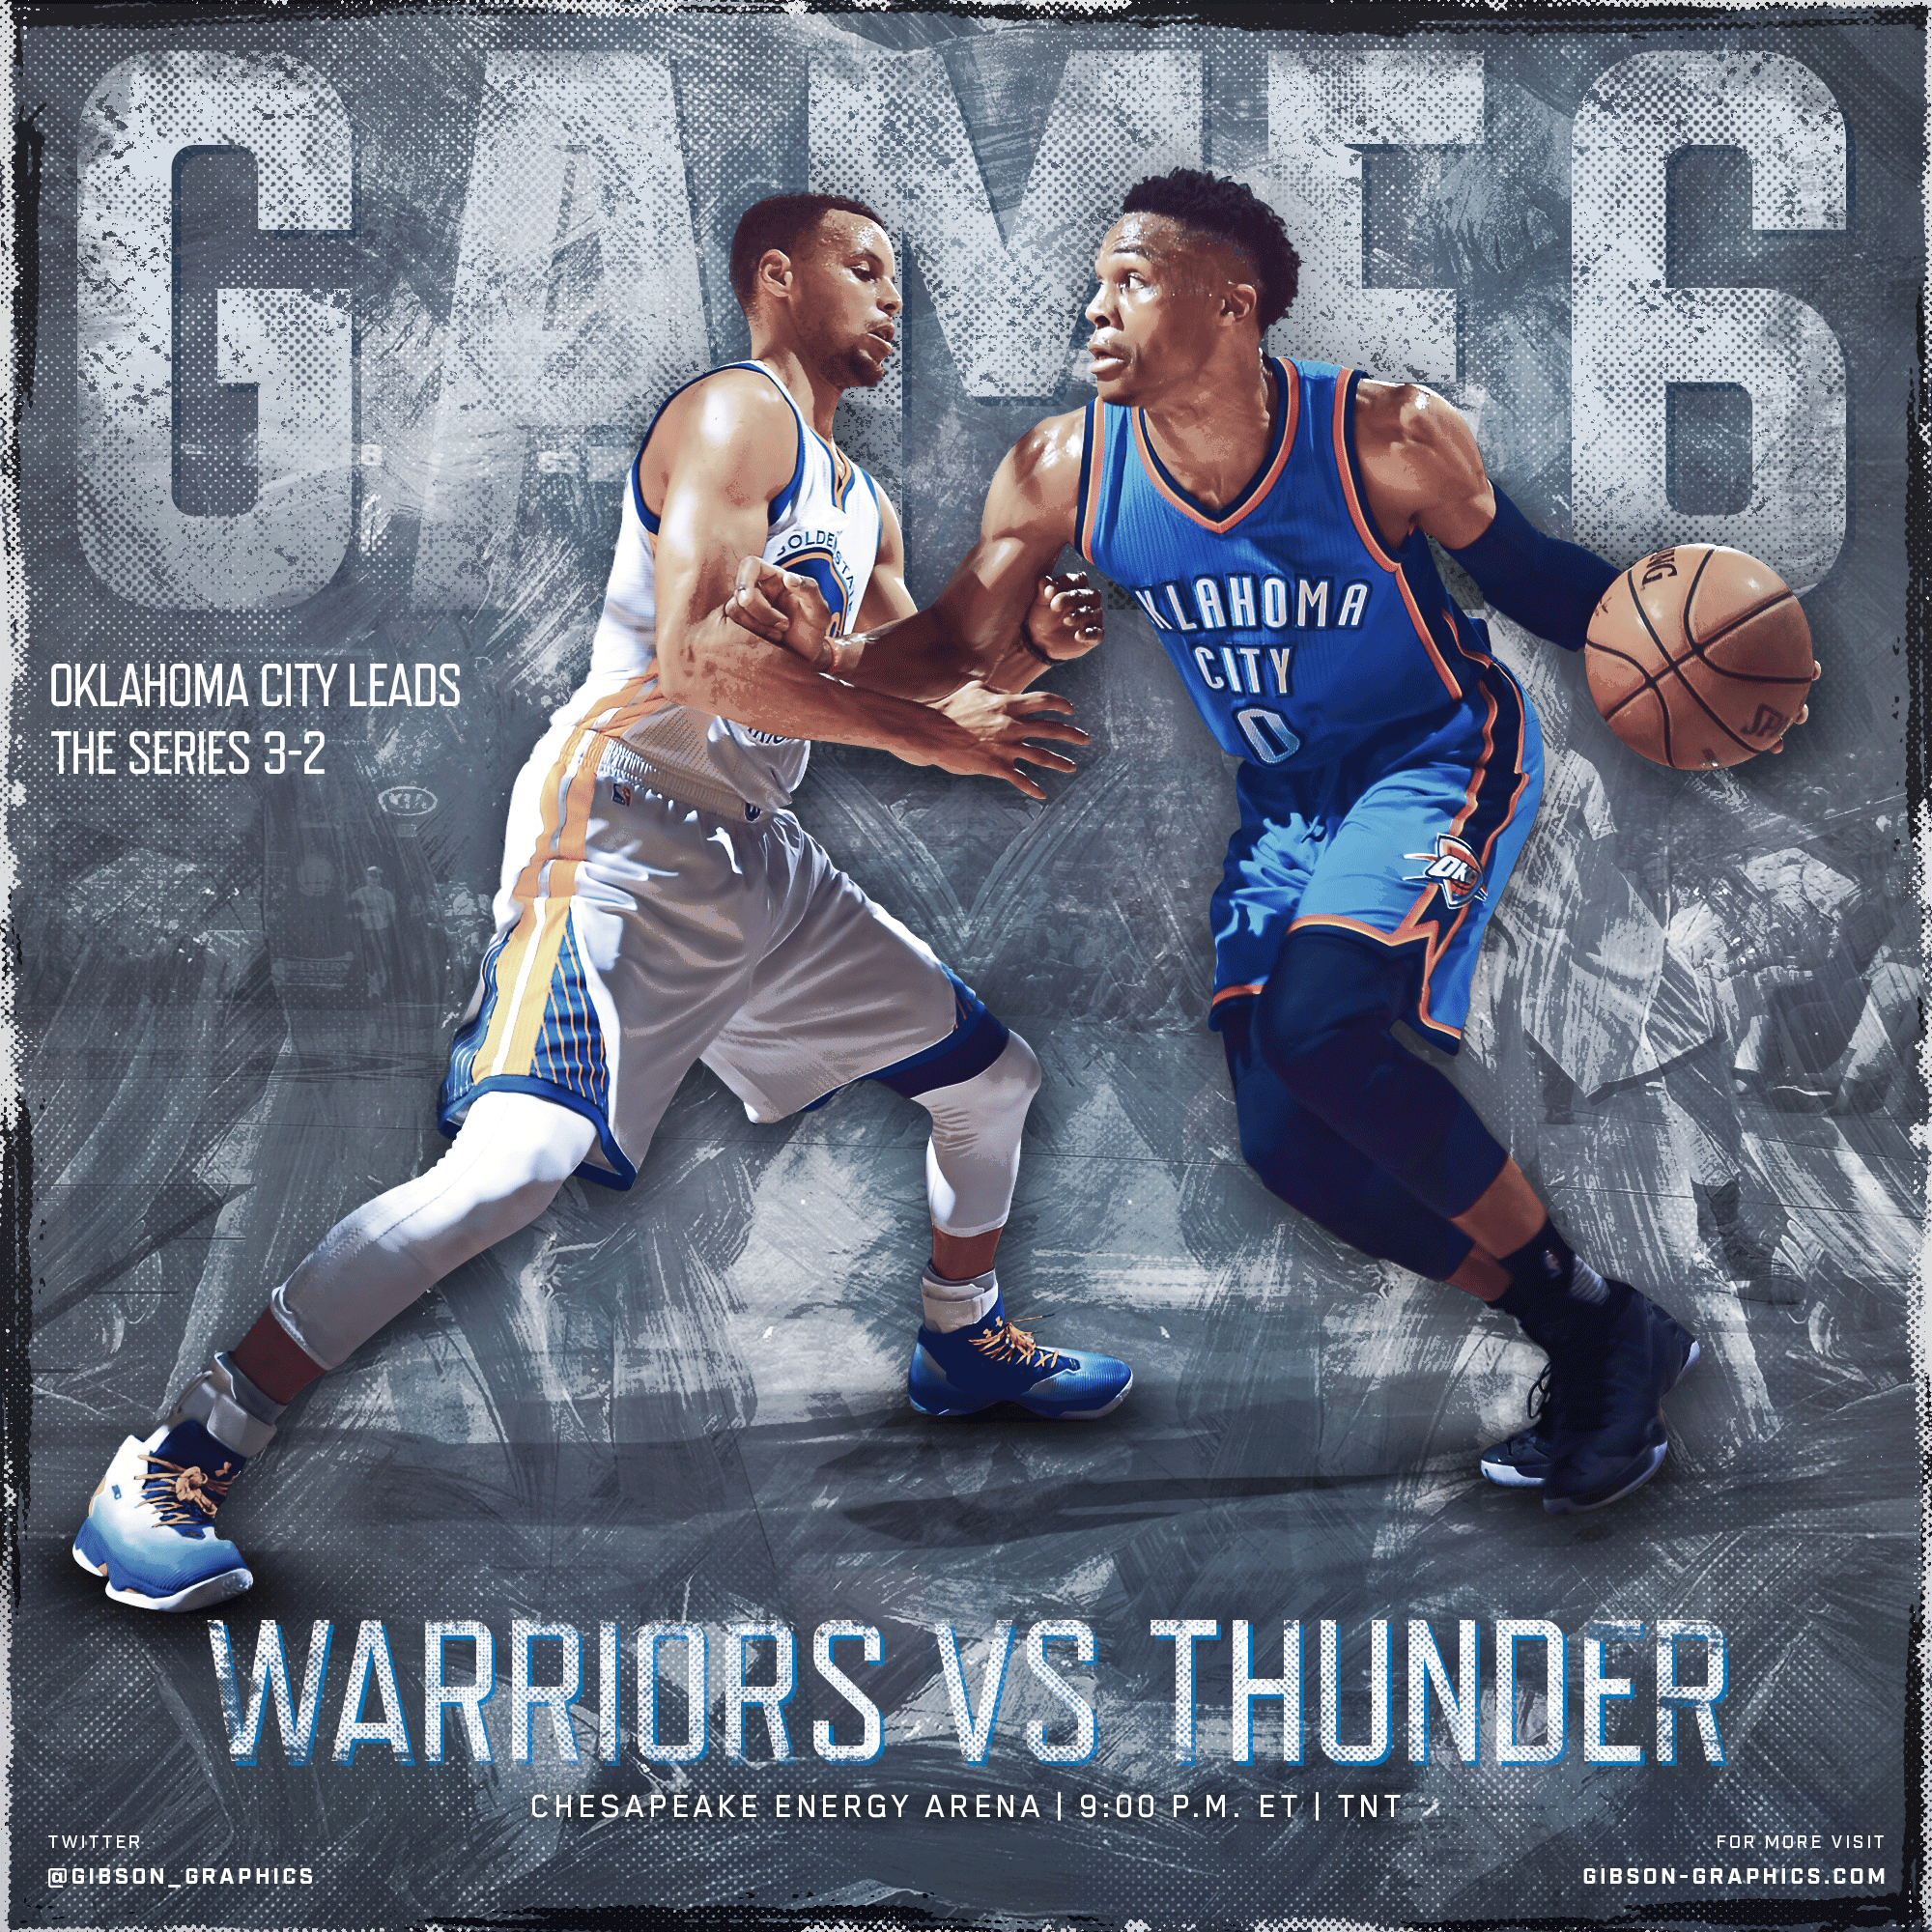 Thunder vs Warriors Game 6 Conference Finals